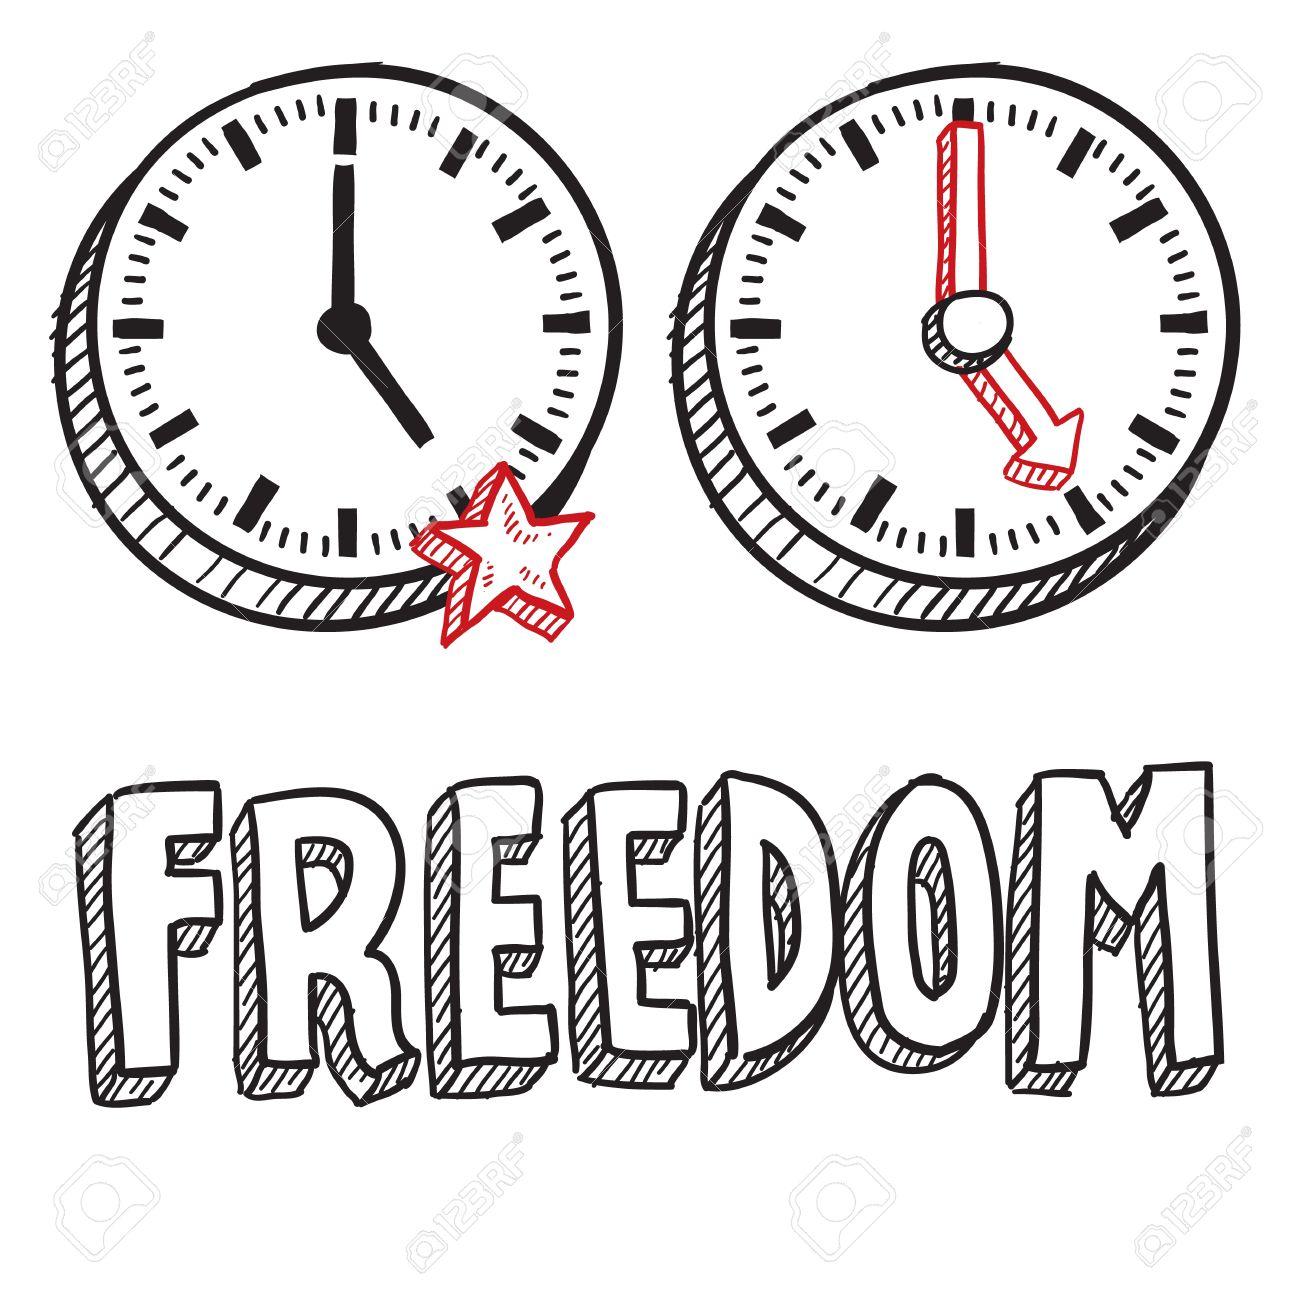 Doodle style freedom from work illustration in vector format  Includes text 5 00 PM clock showing end of work day Stock Vector - 18476623